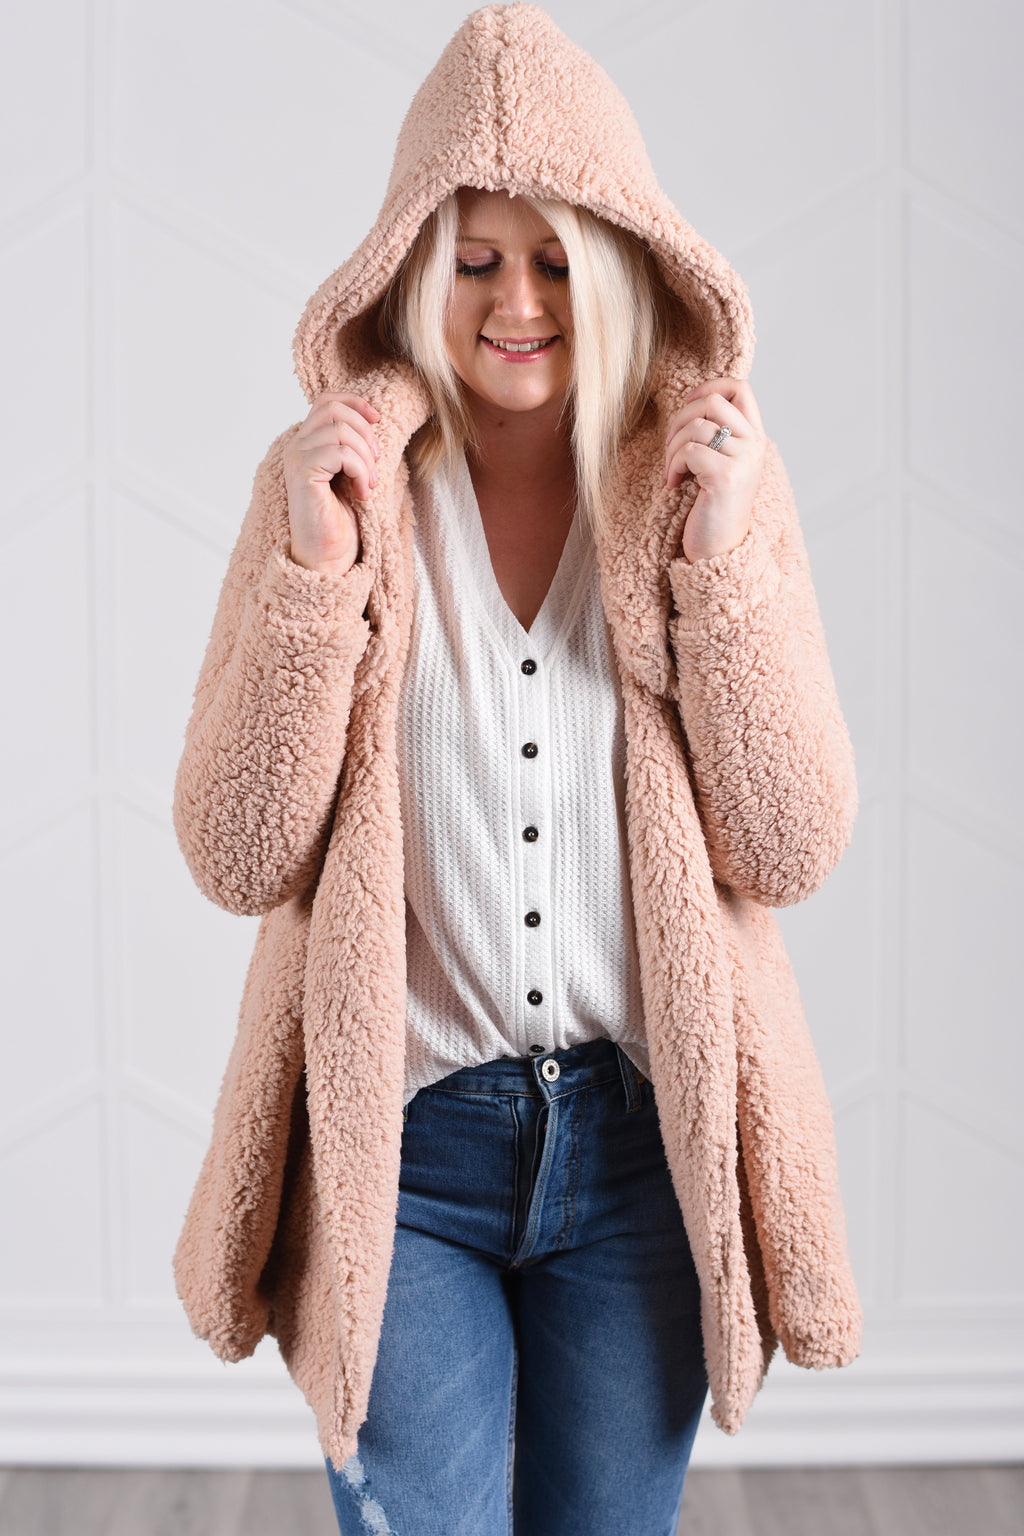 Fiona Fluffy Jacket - Strong Confident You